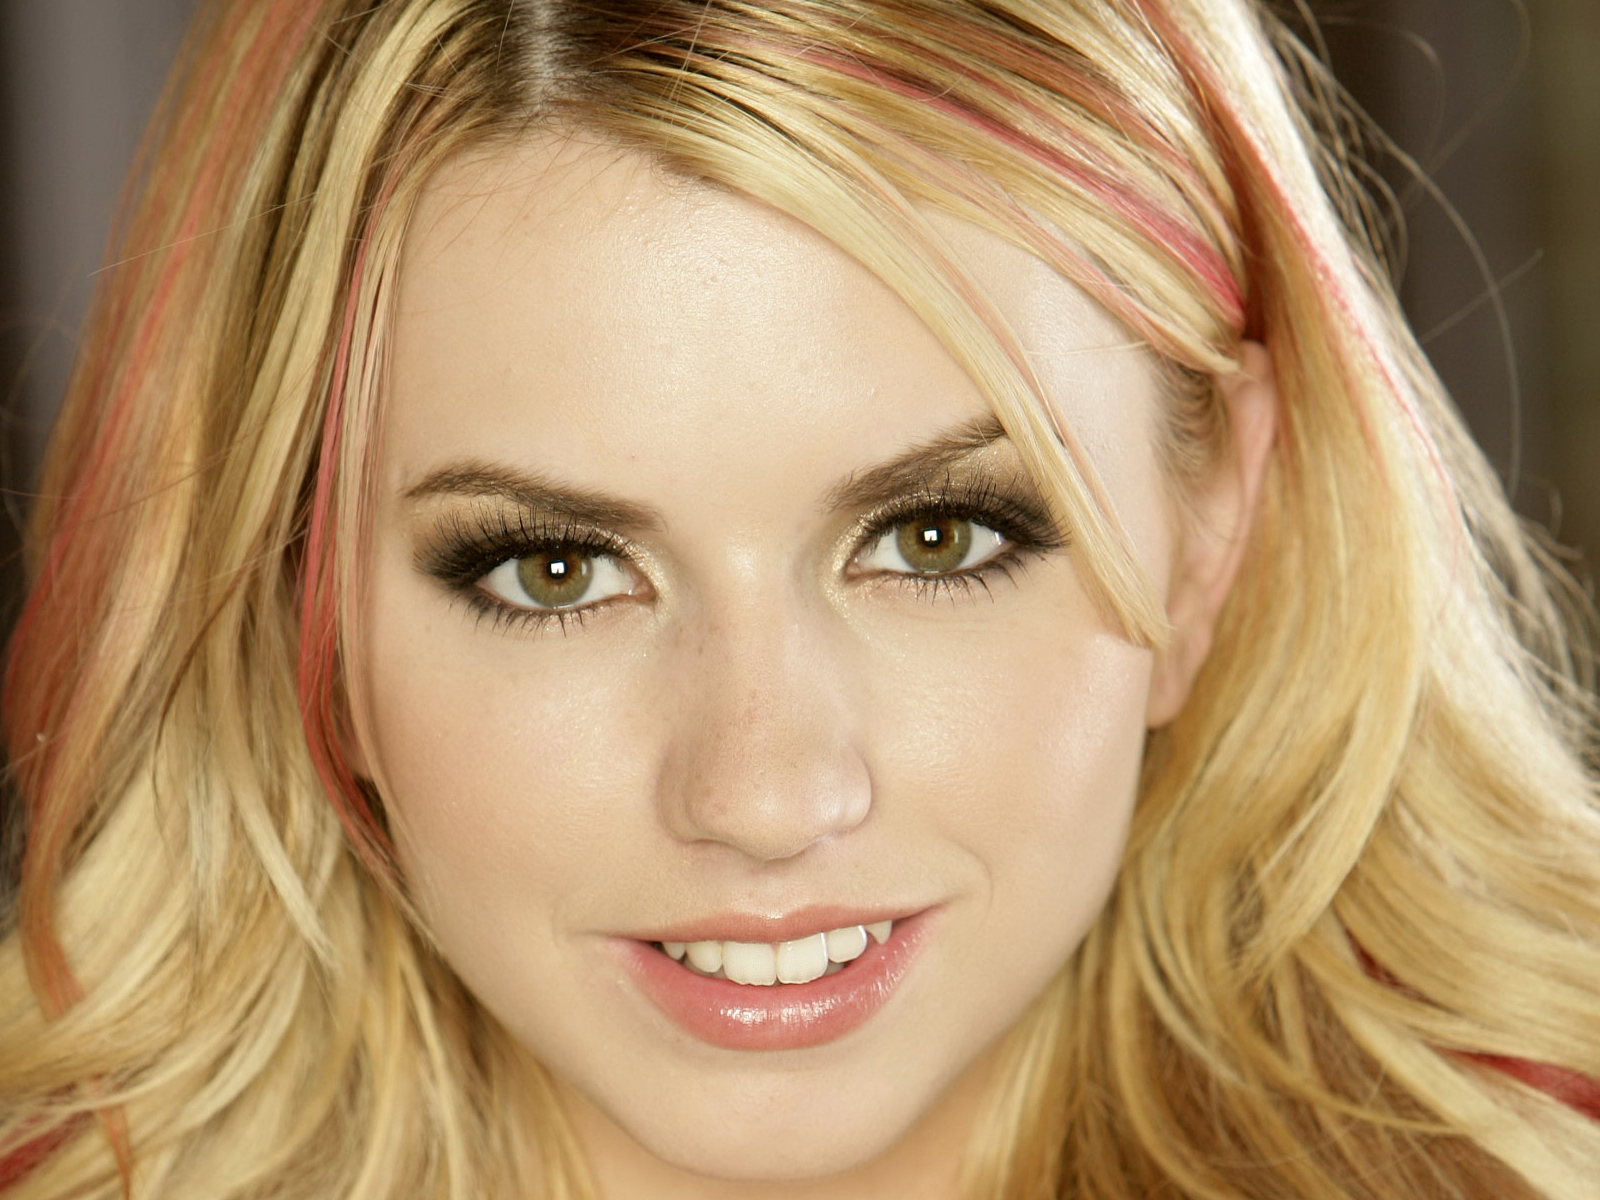 lexi belle hd photo